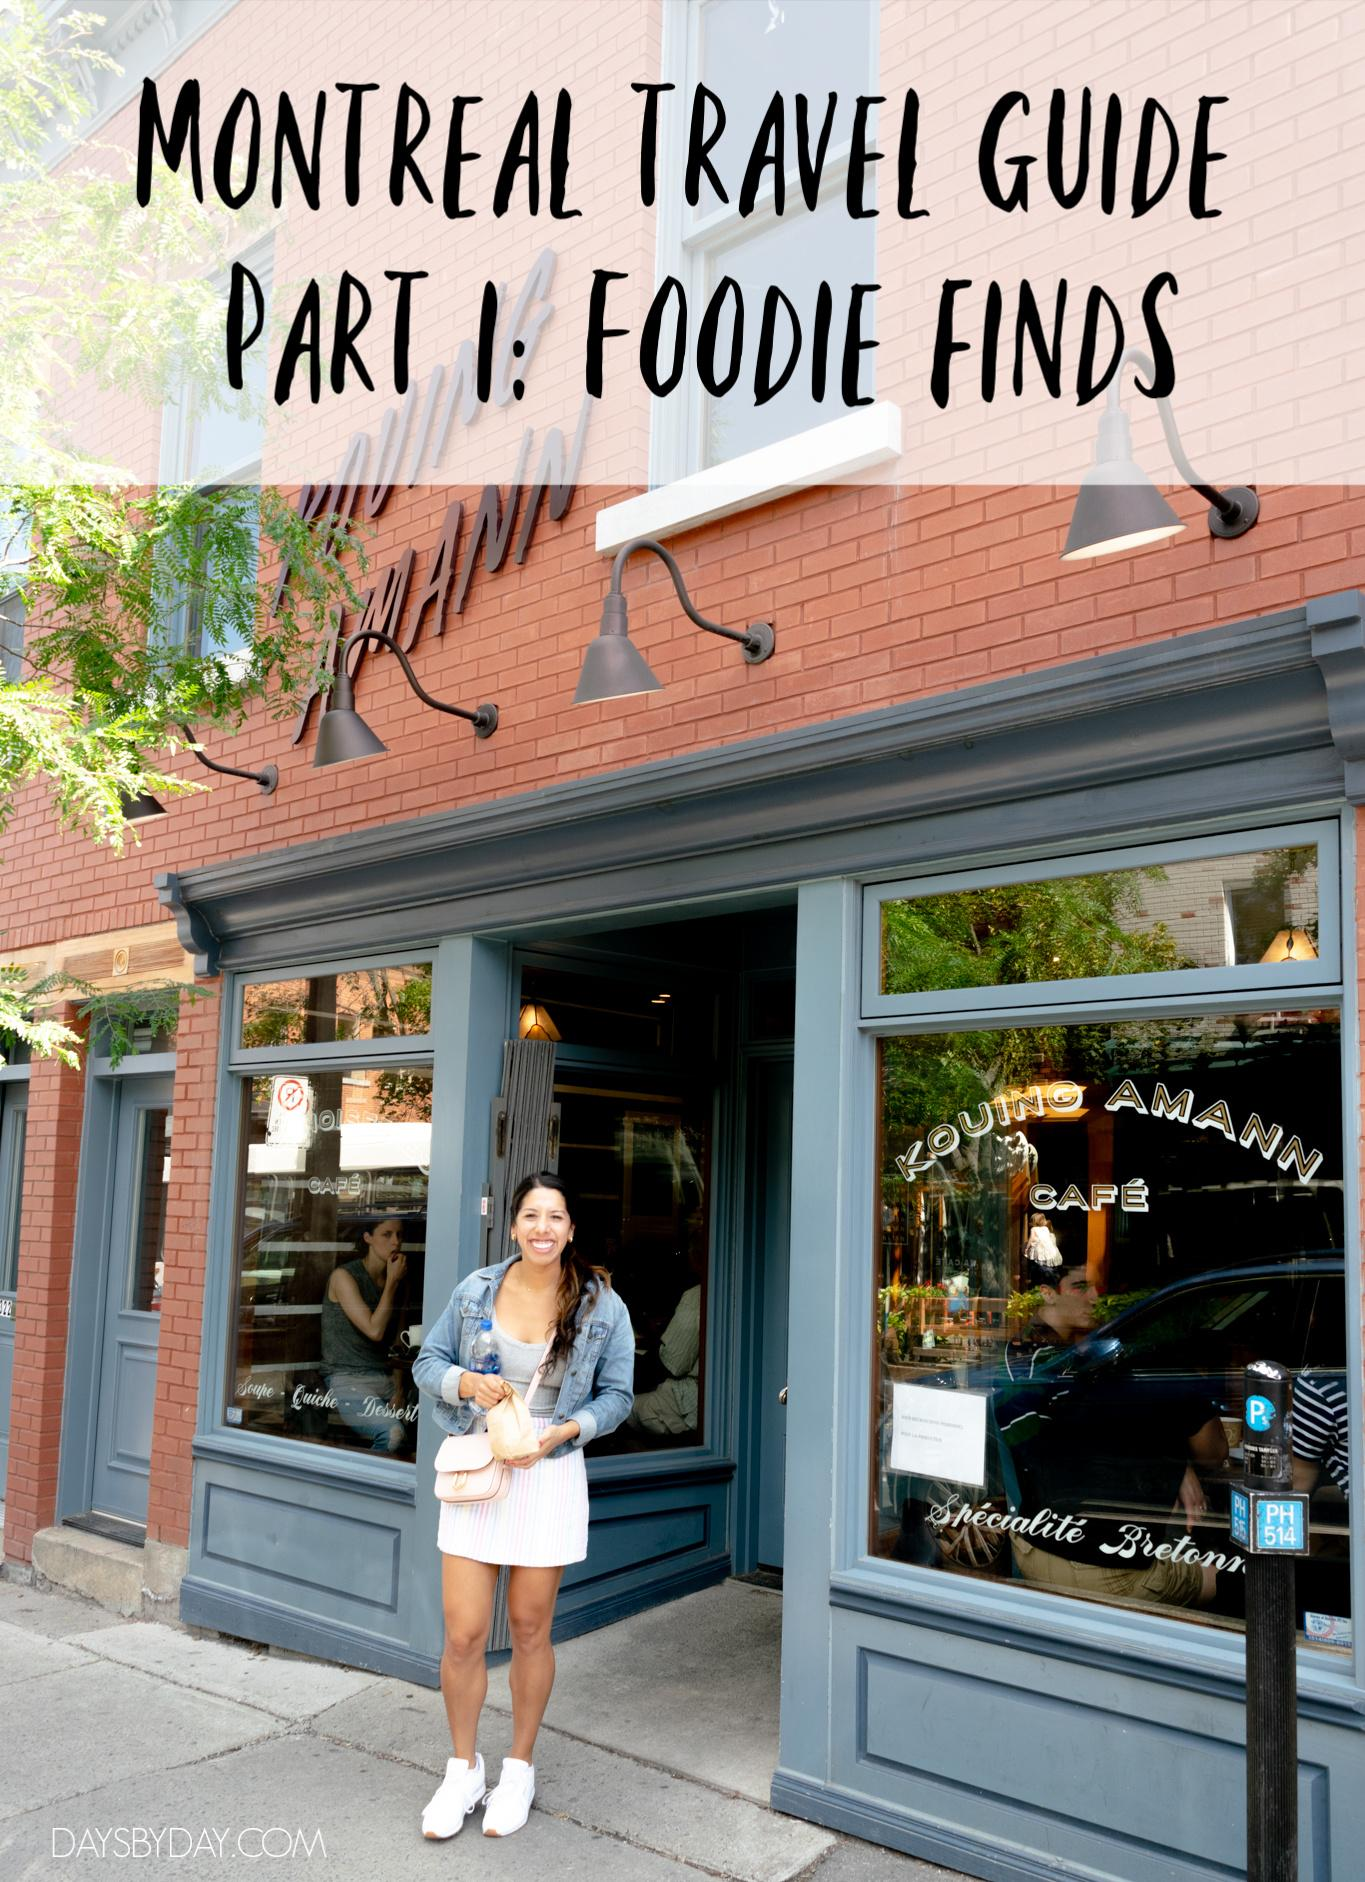 Montreal Travel Guide Part I: Foodie Finds